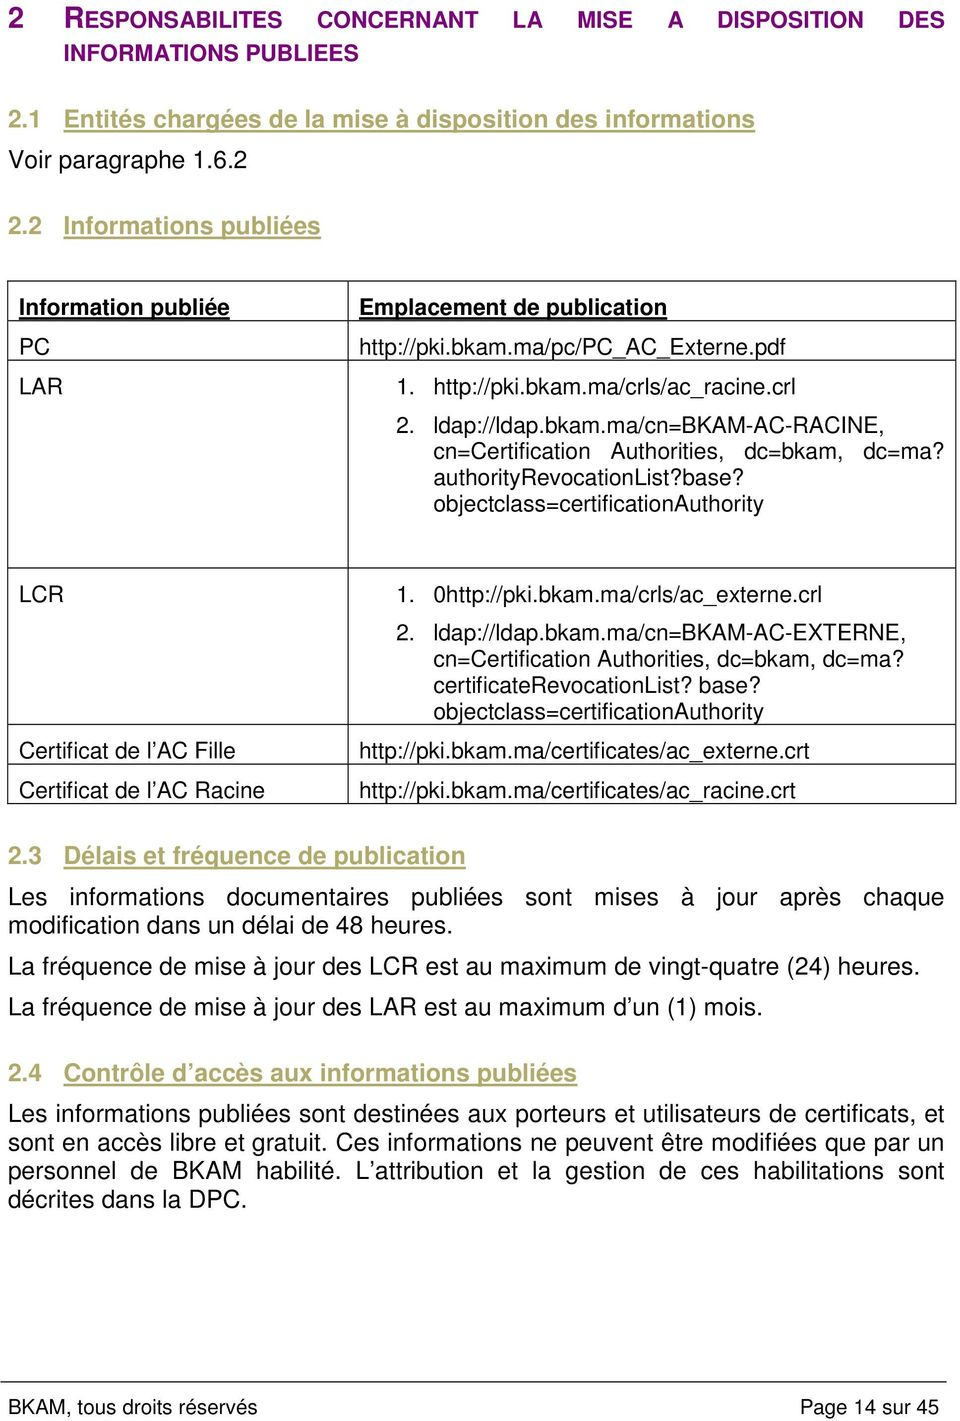 authorityrevocationlist?base? objectclass=certificationauthority LCR Certificat de l AC Fille Certificat de l AC Racine 1. 0http://pki.bkam.